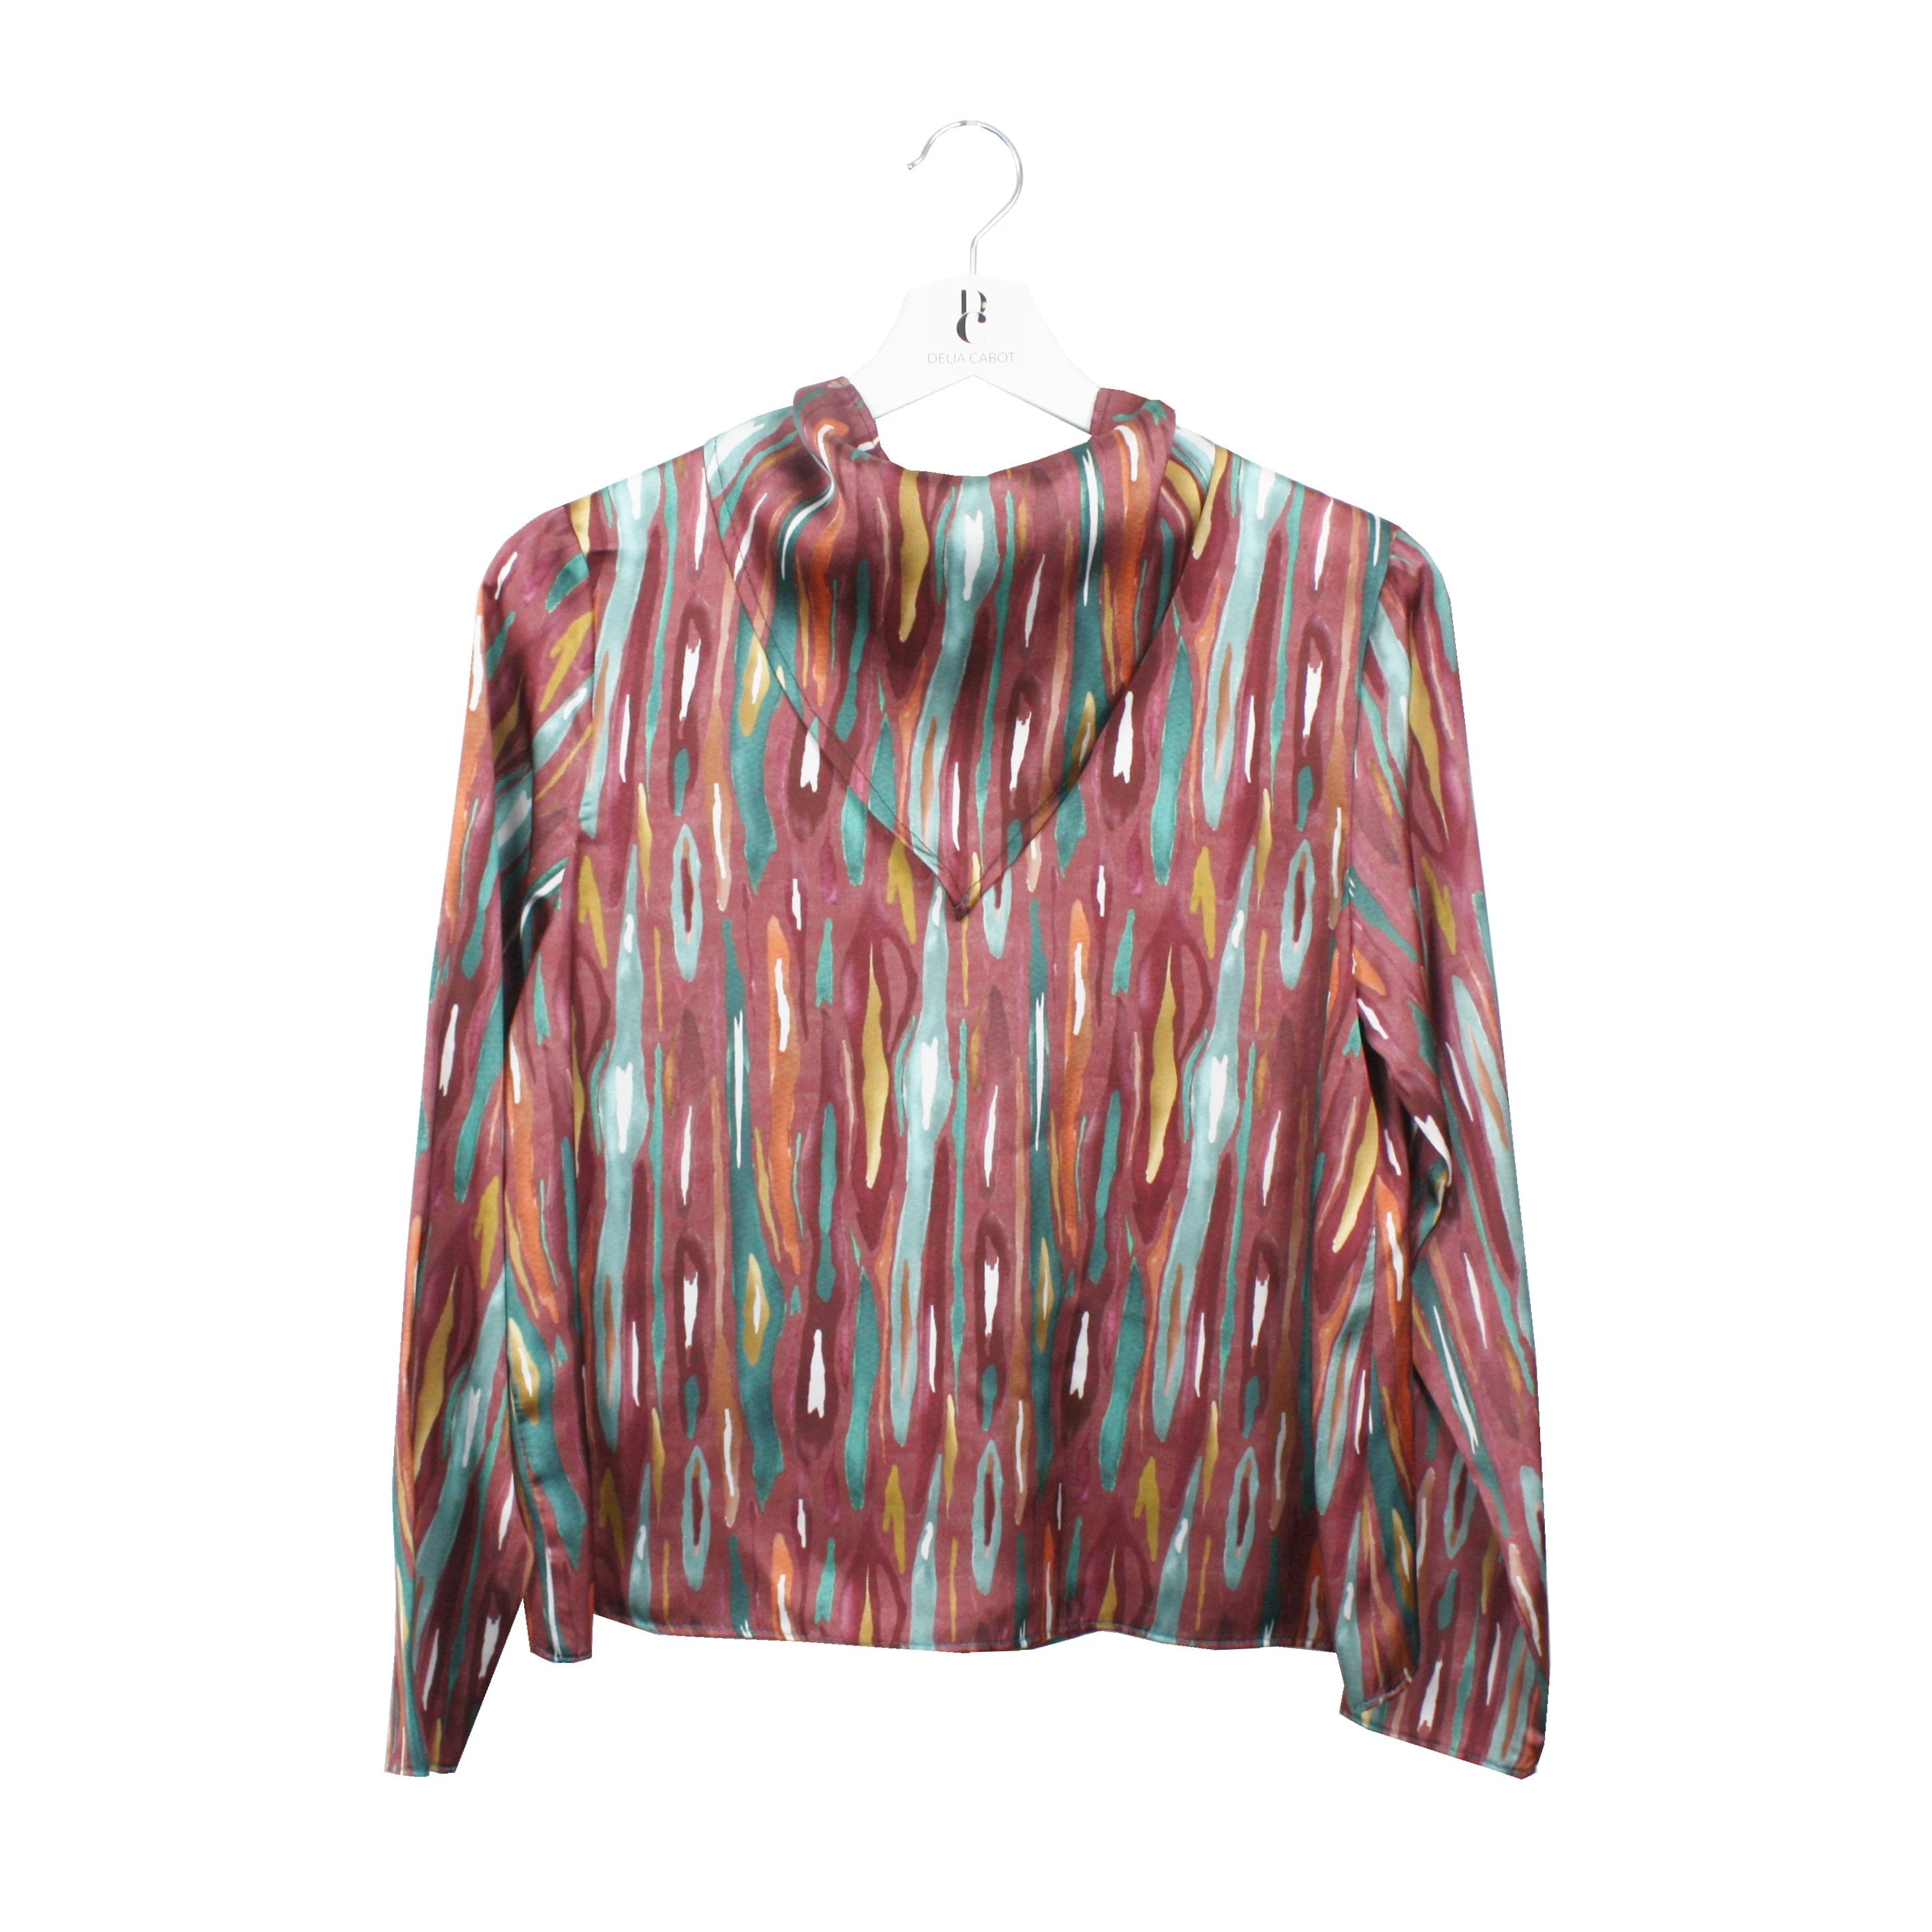 Blusa Frida estampado burdeos